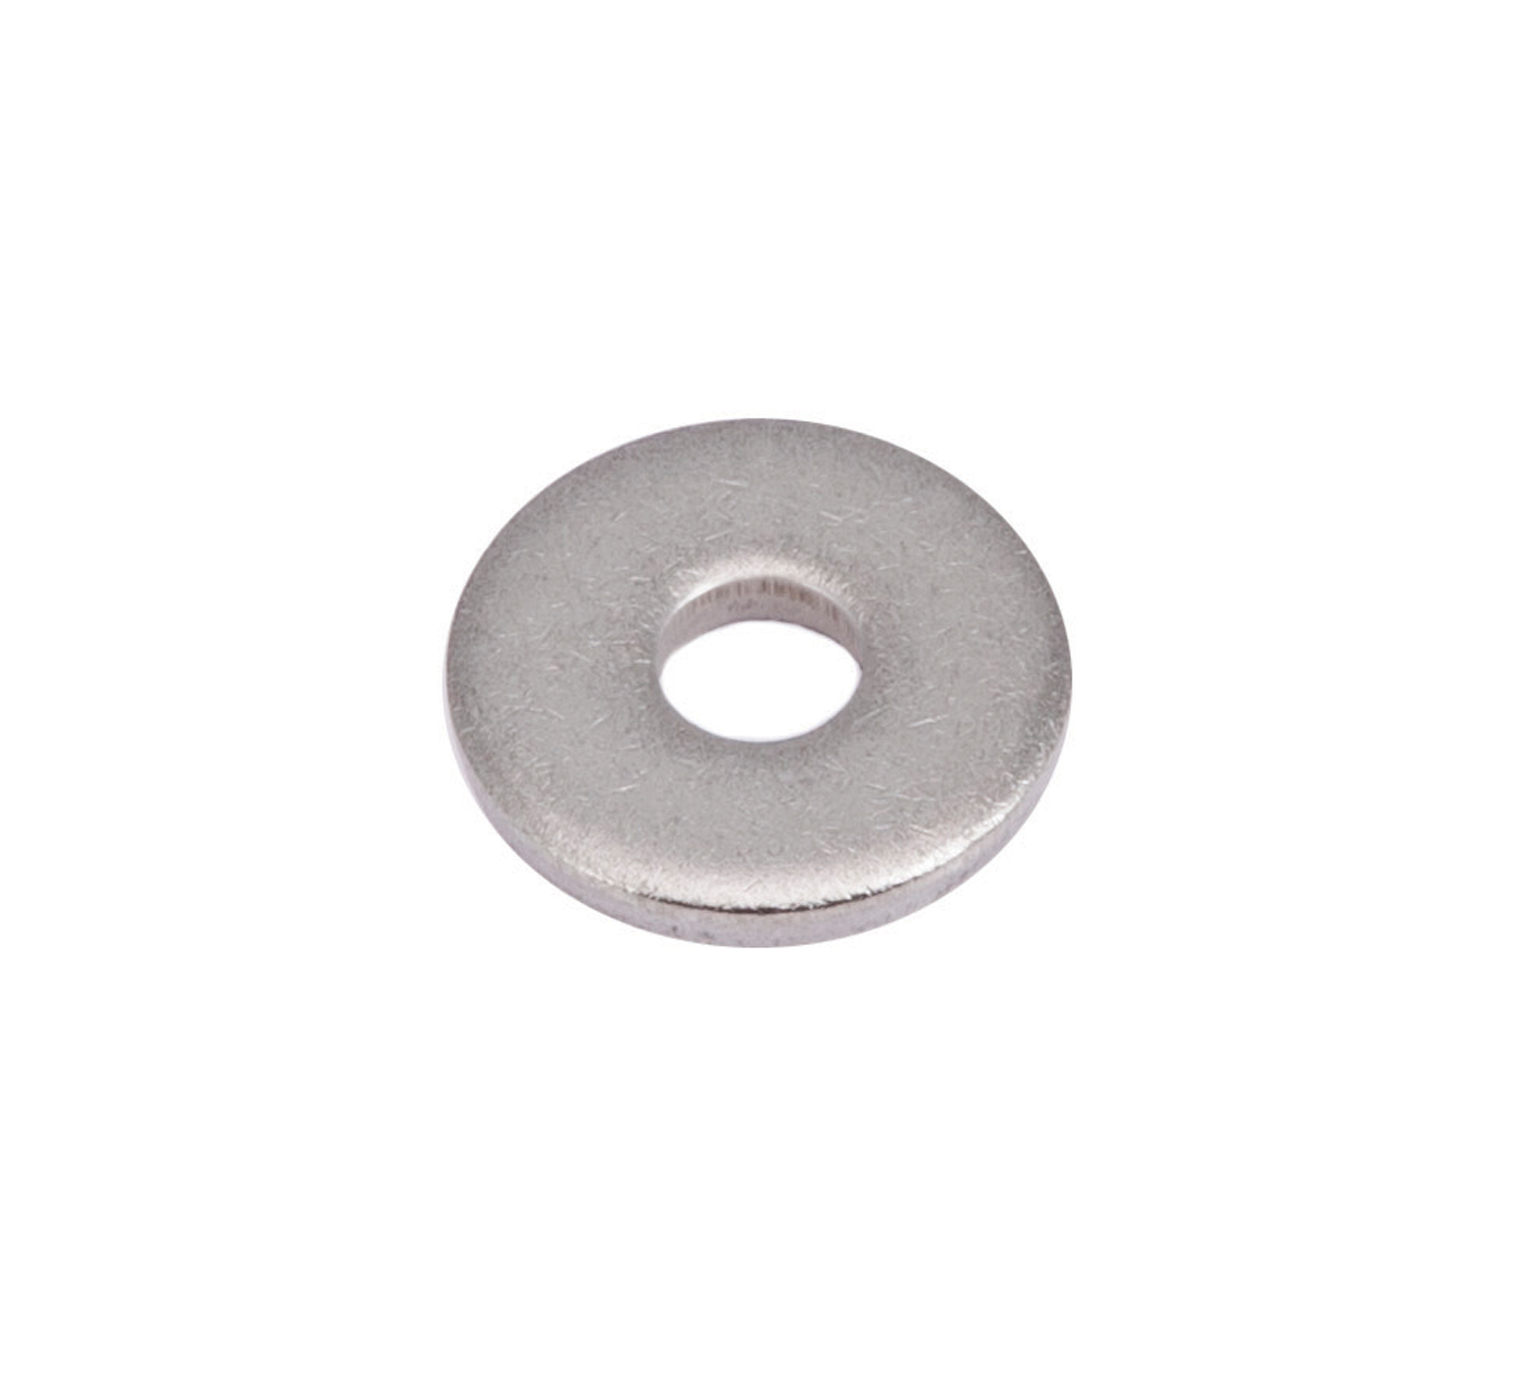 140053 Flat Washer alt 1